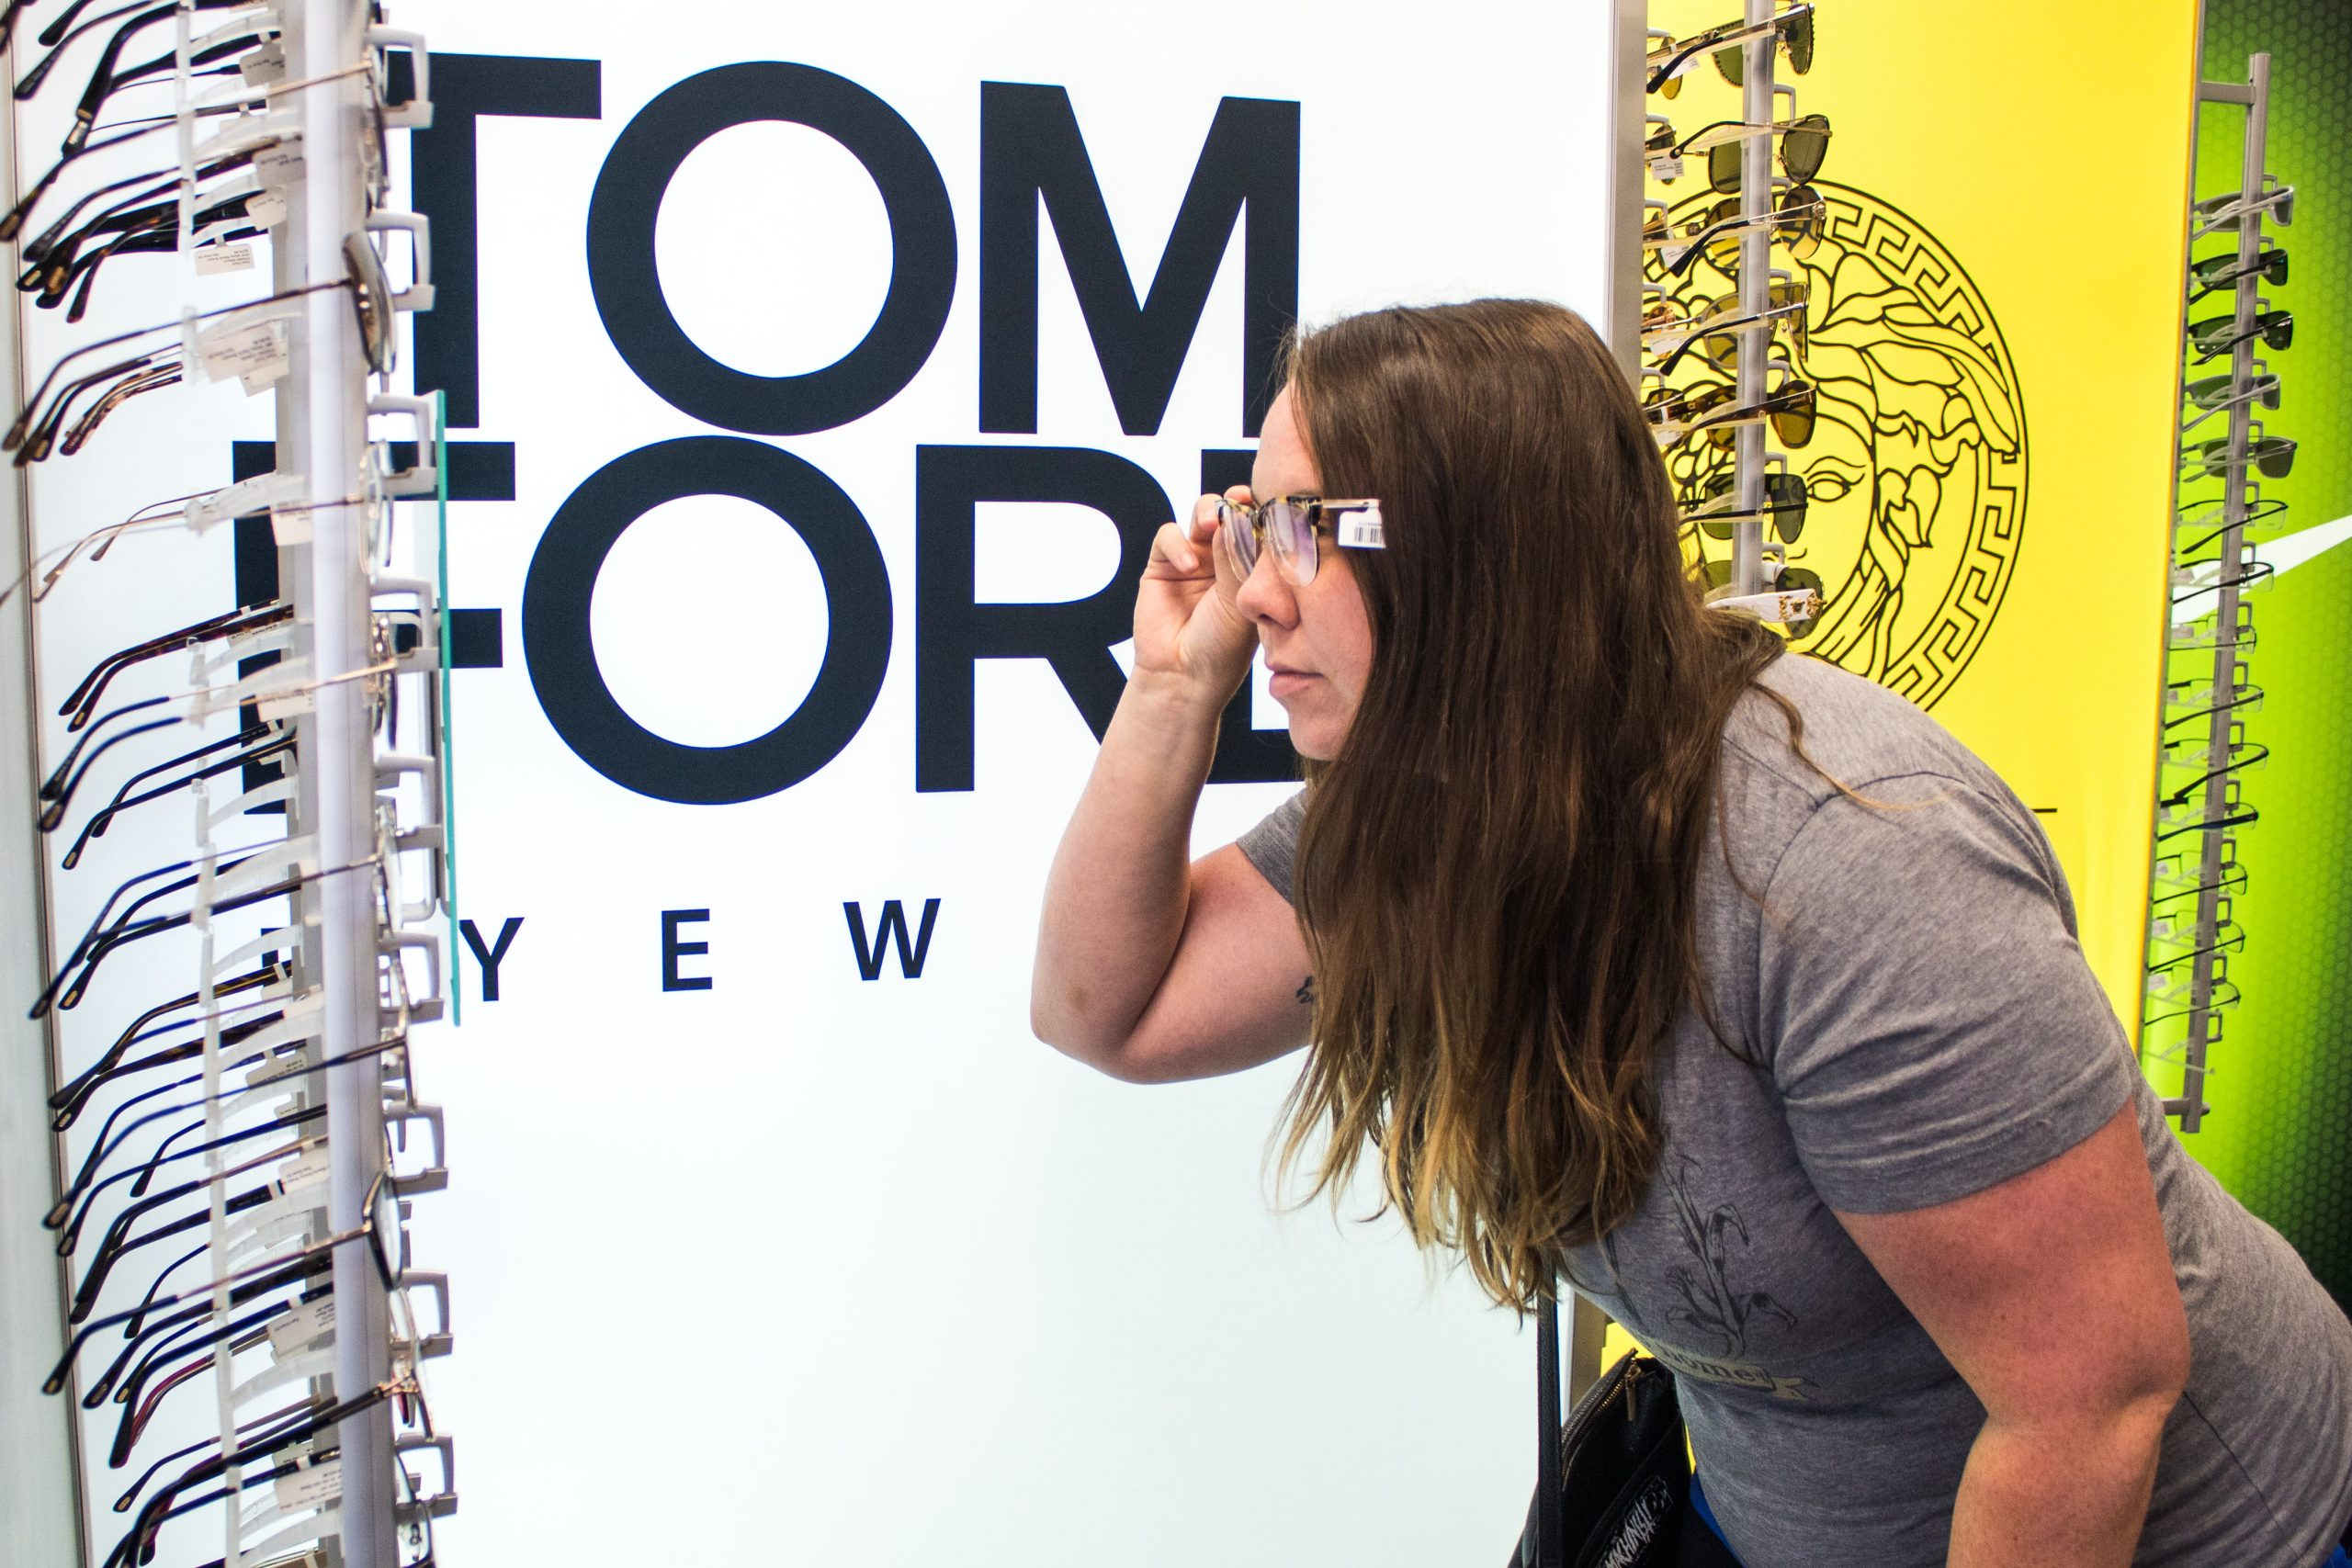 Eye Exam Basics | What to Expect From an Eye Exam